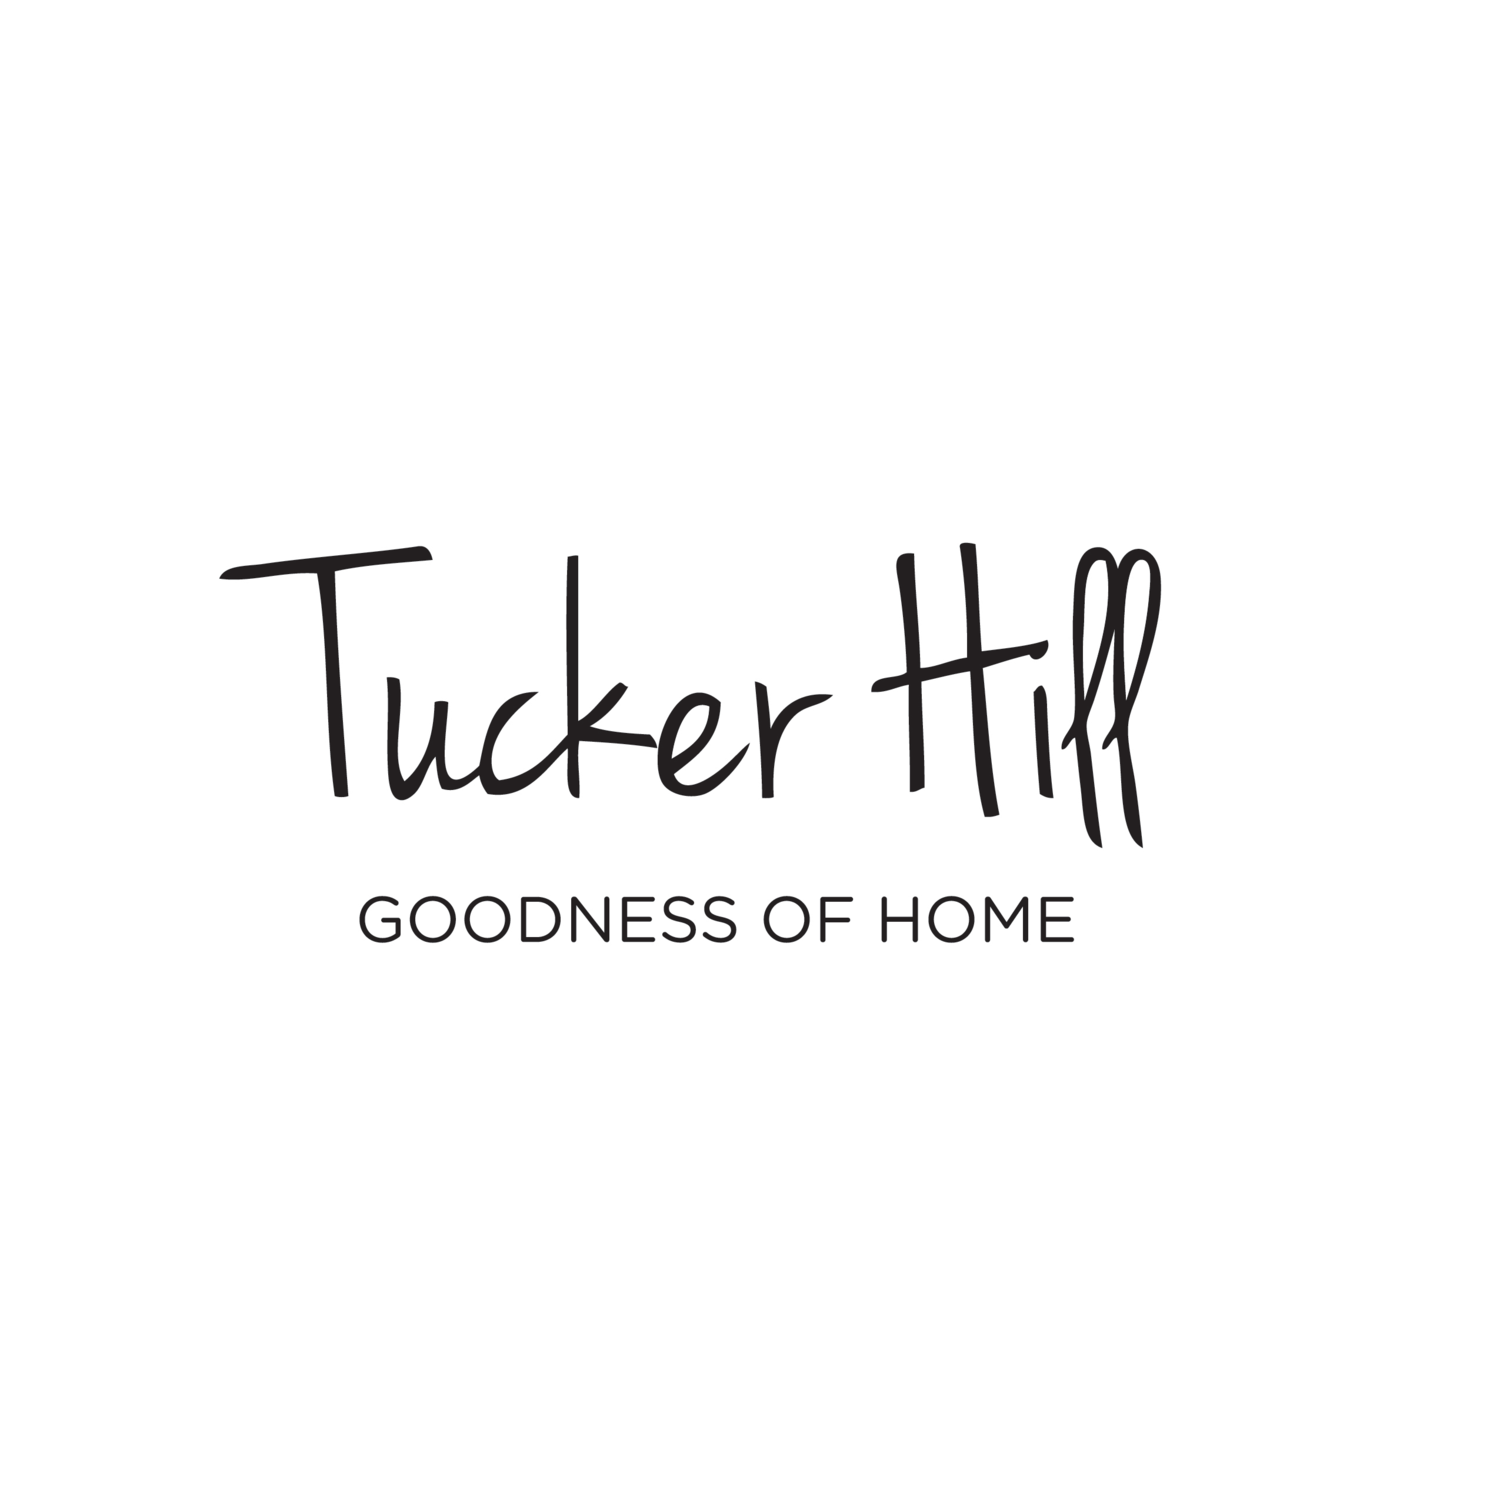 Tucker Hill Home